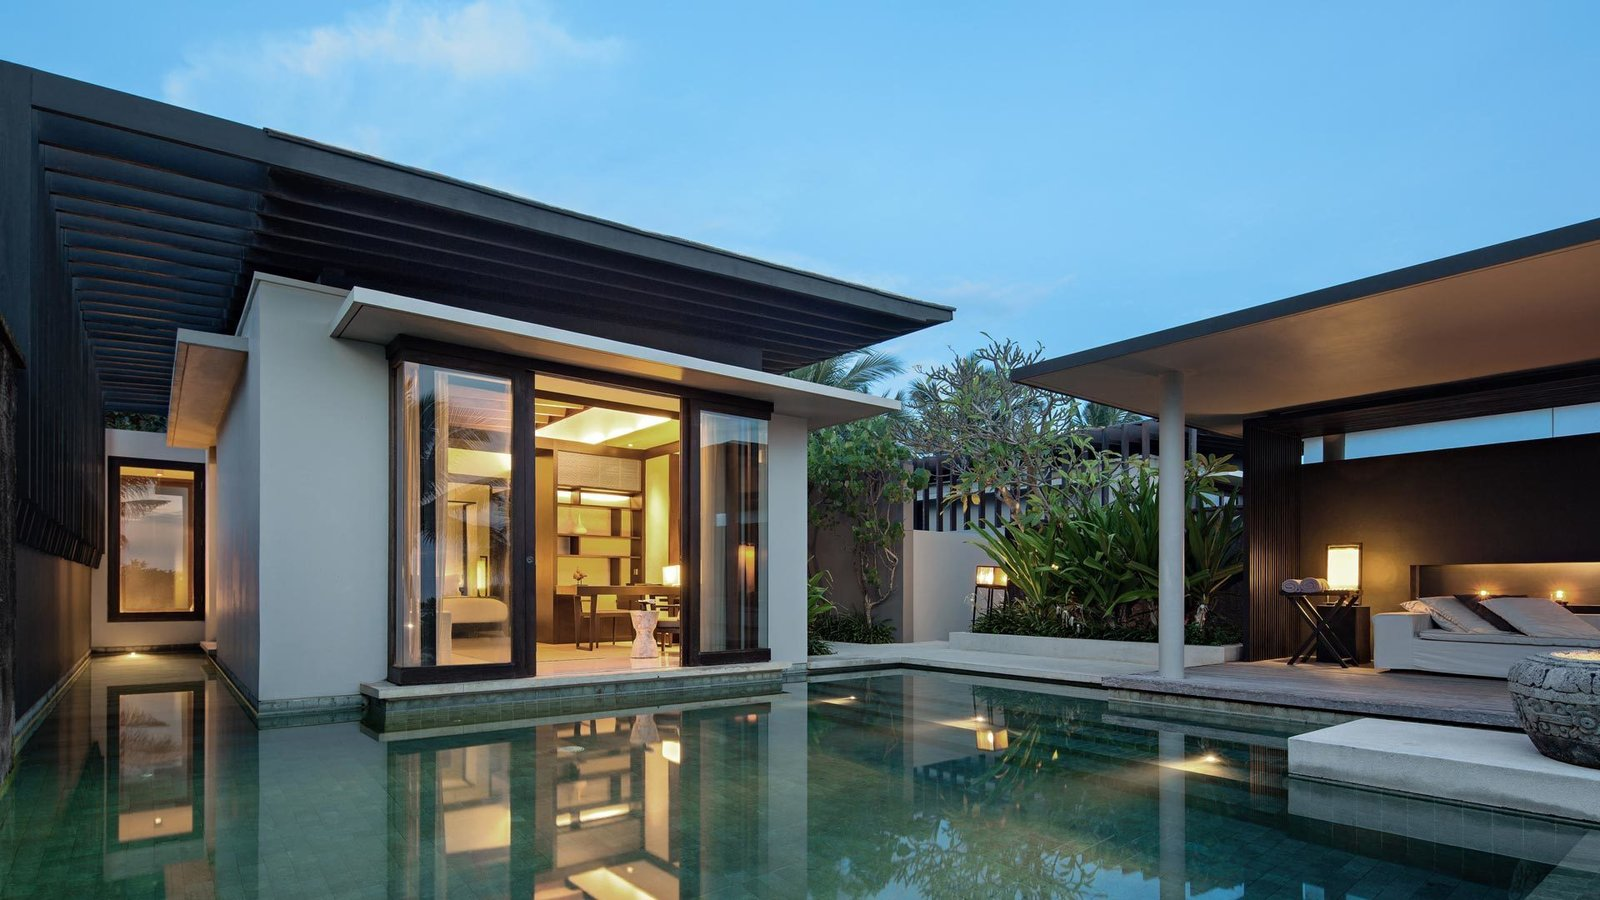 Outdoor, Large Pools, Tubs, Shower, Swimming Pools, Tubs, Shower, Infinity Pools, Tubs, Shower, Back Yard, Trees, Hardscapes, Shrubs, and Concrete Patio, Porch, Deck  Photo 8 of 9 in A Modern Bali Resort That's Inspired by the Local Landscape and Culture